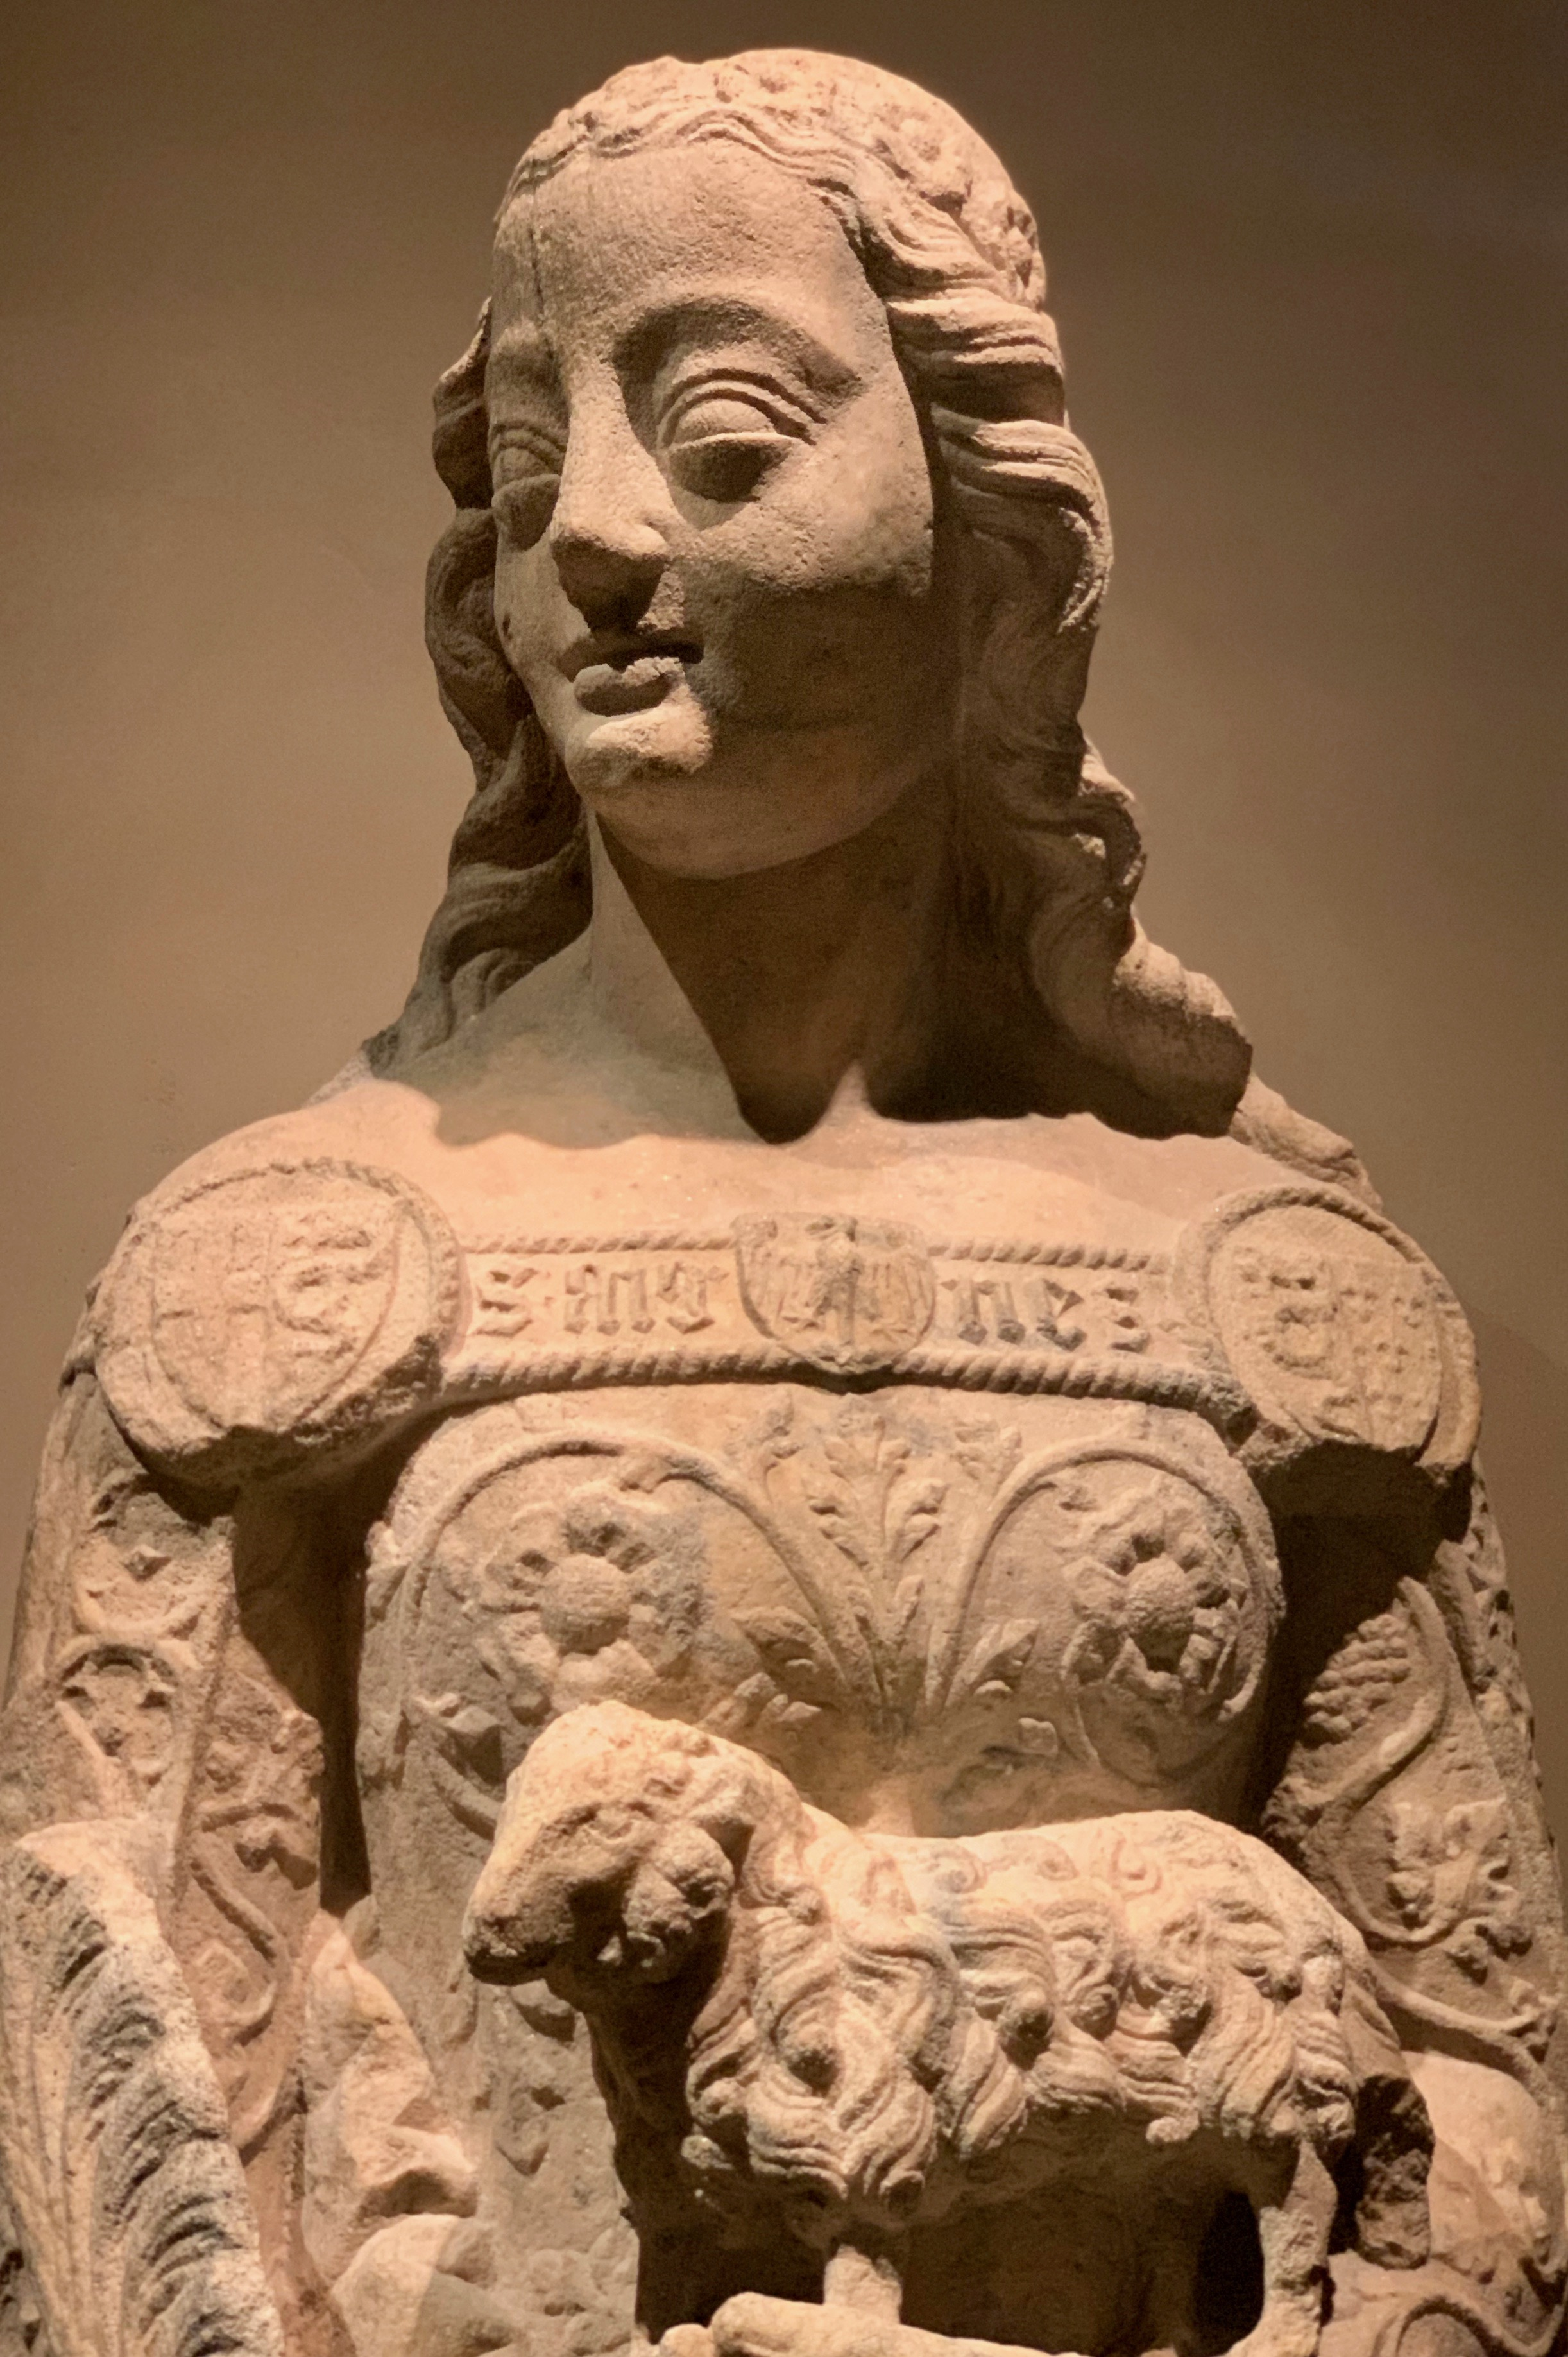 "This sculpture of St. Agnes from the second half of the 14th century by an unidentified artist was quite striking. It was observed in the Museum of the Milan Cathedral. Tradition tells us that, at age 12, Agnes was slighted for her religious devotion. Her declaration of a life of purity while being pursued by many suitors found her being punished for such by being dragged naked in the streets to be placed in a brothel. She turned to days of prayer in the midst of this unfavorable environment. Tragically Agnes was ultimately killed for her steadfastness and virginity.   Inspiration take away  —gain strength from the stories of faith of those who have gone before us. Also admiration for how the artist used the many symbols in this ""simple"" sculpture … do you see the shields, the lily, the roses, the lamb, the grapes and vines?"